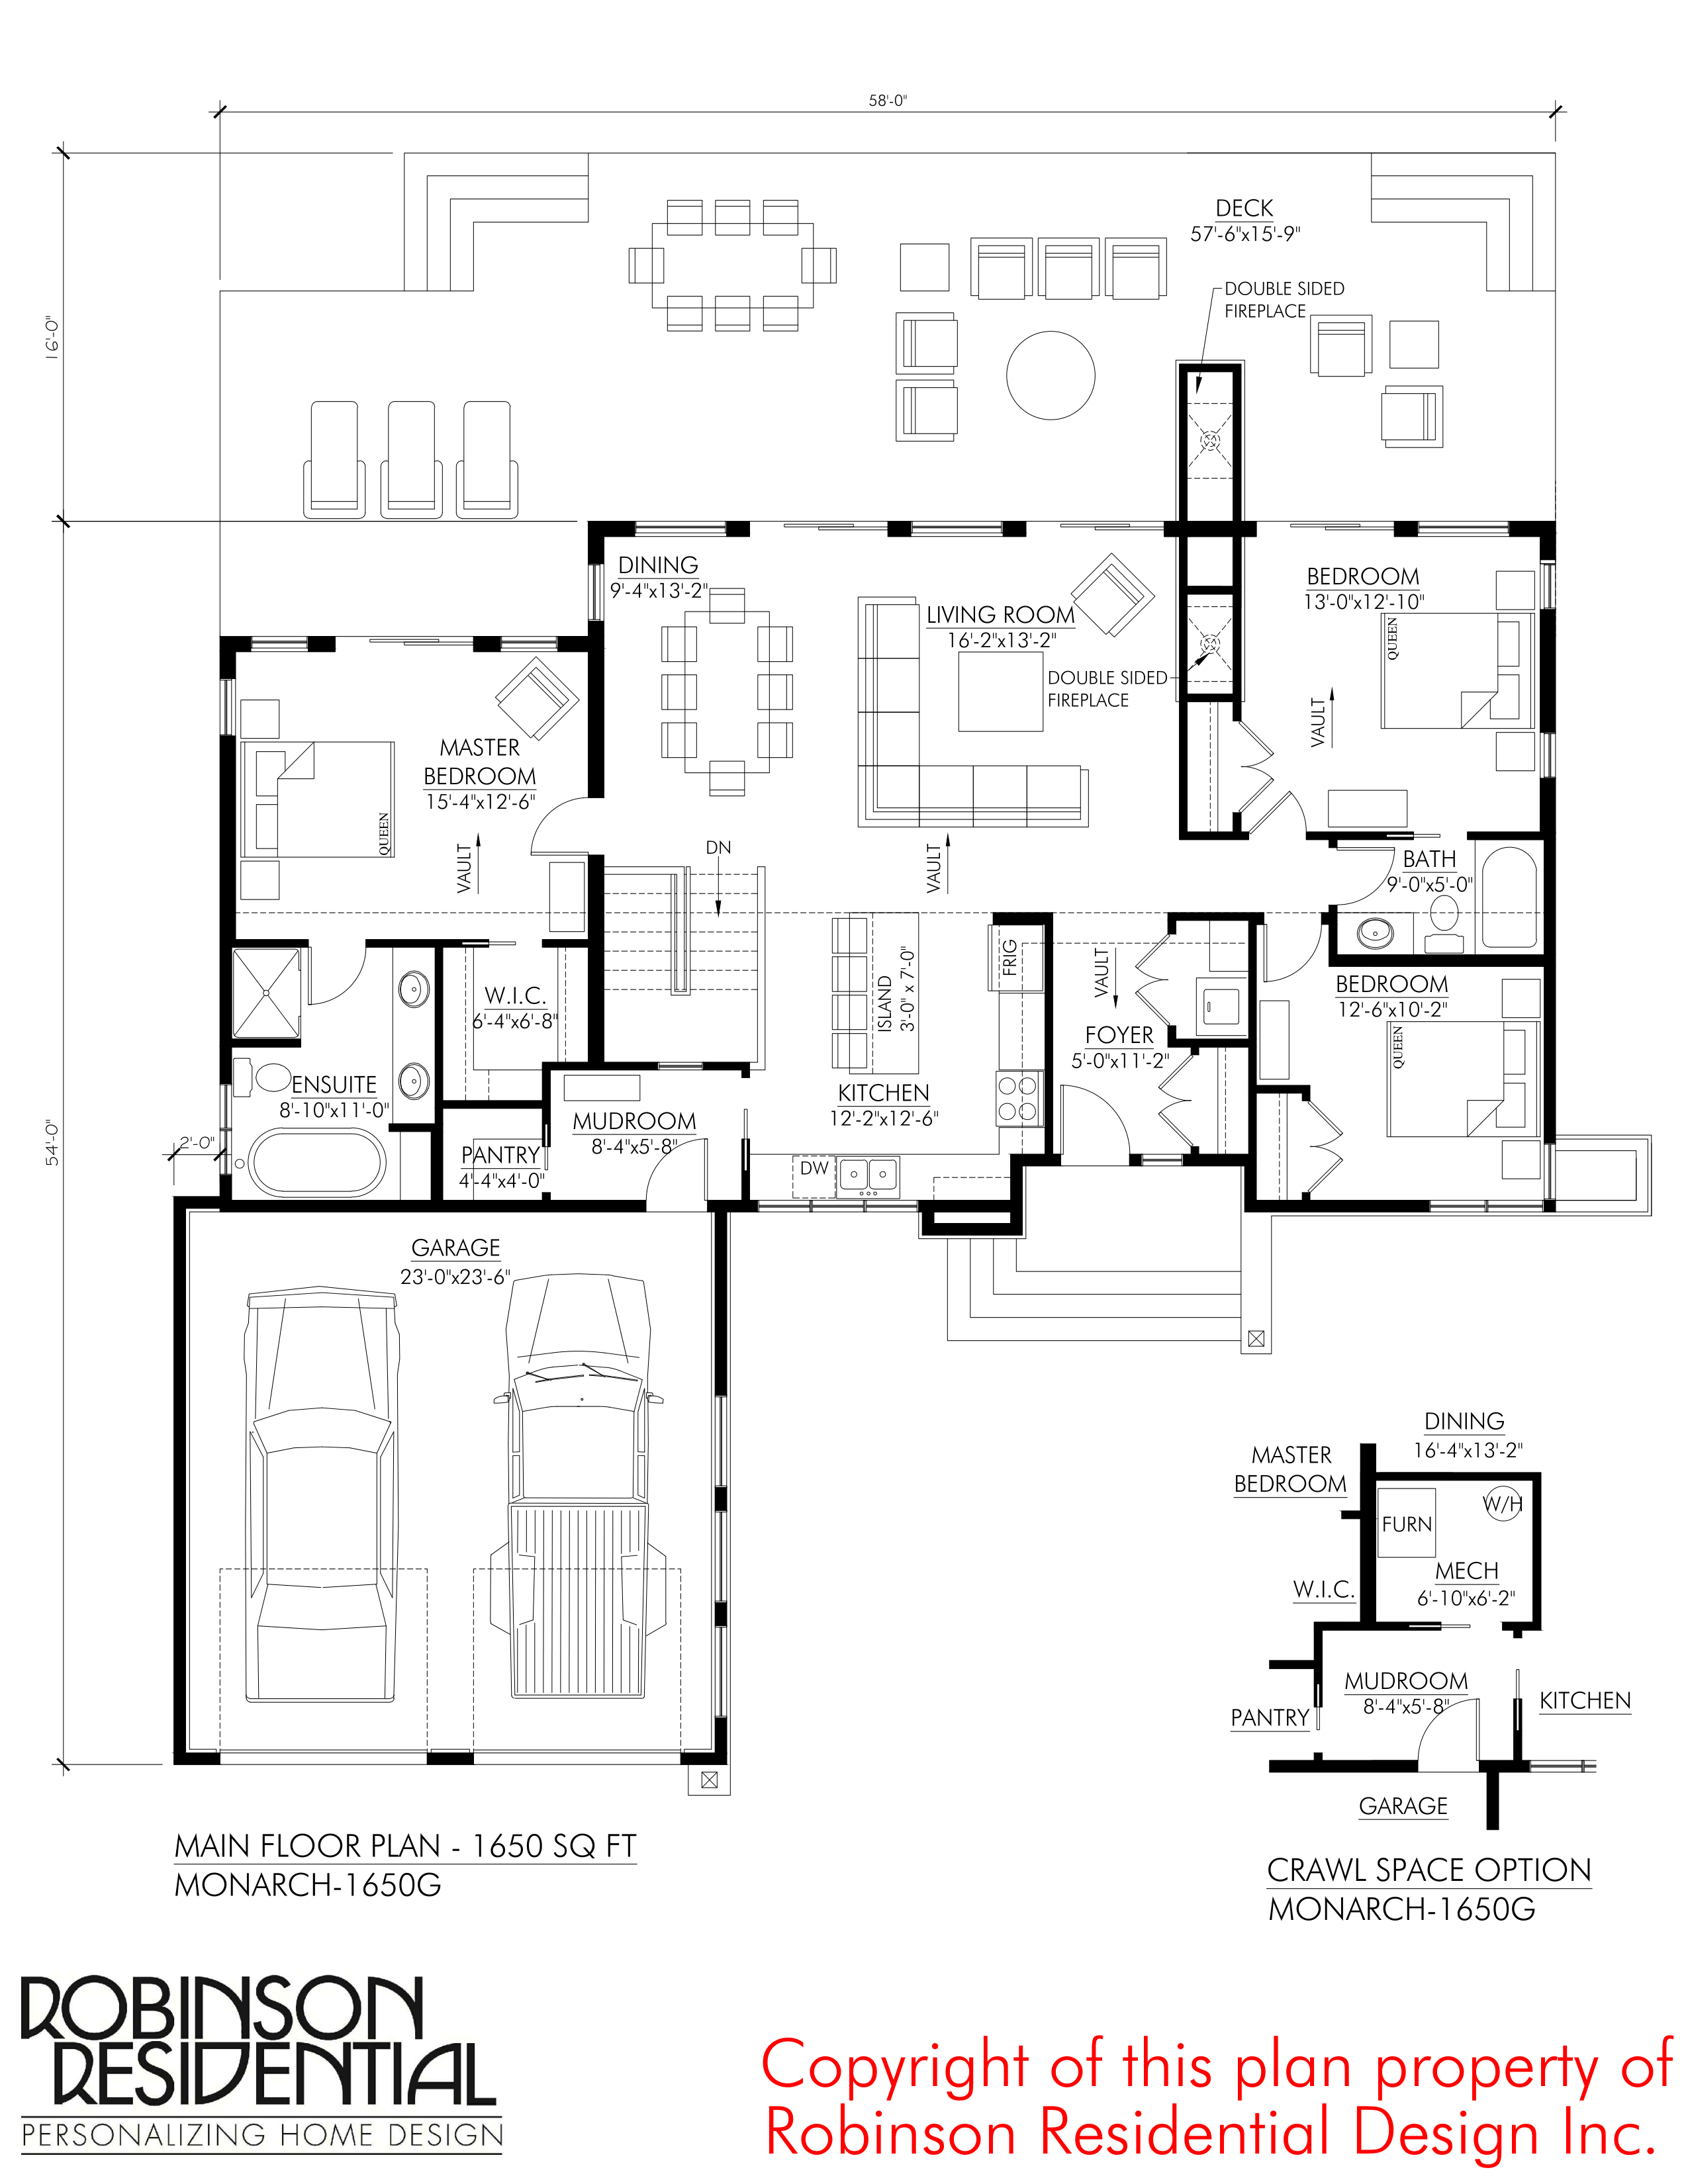 Contemporary monarch 1650g robinson plans for Monarch homes floor plans